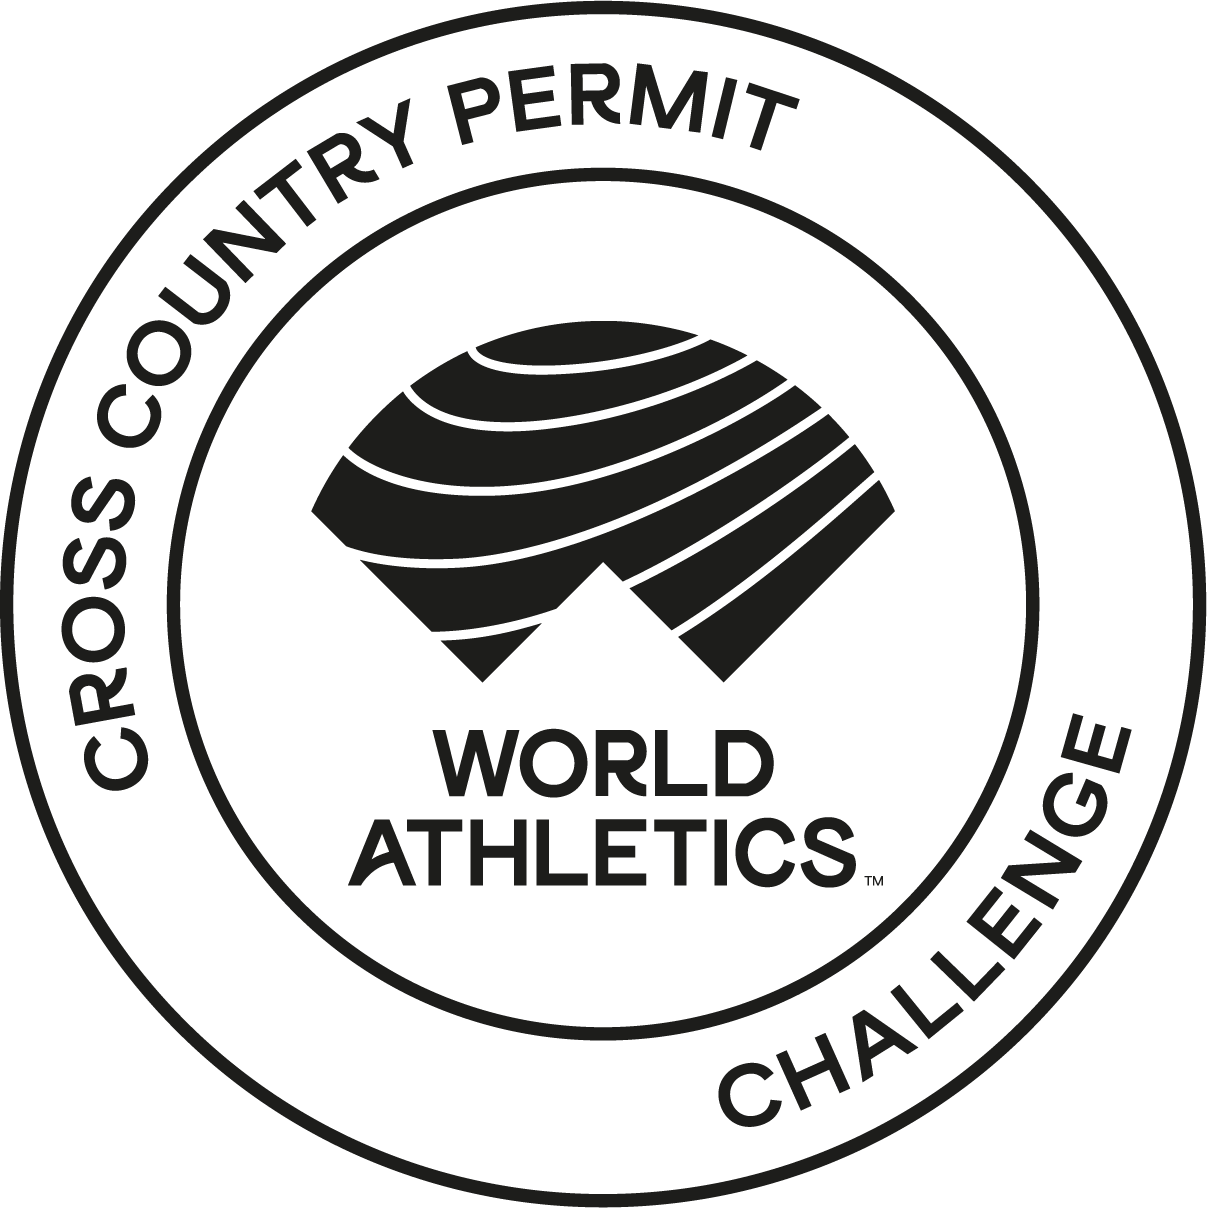 Cross Country Permit logo ()